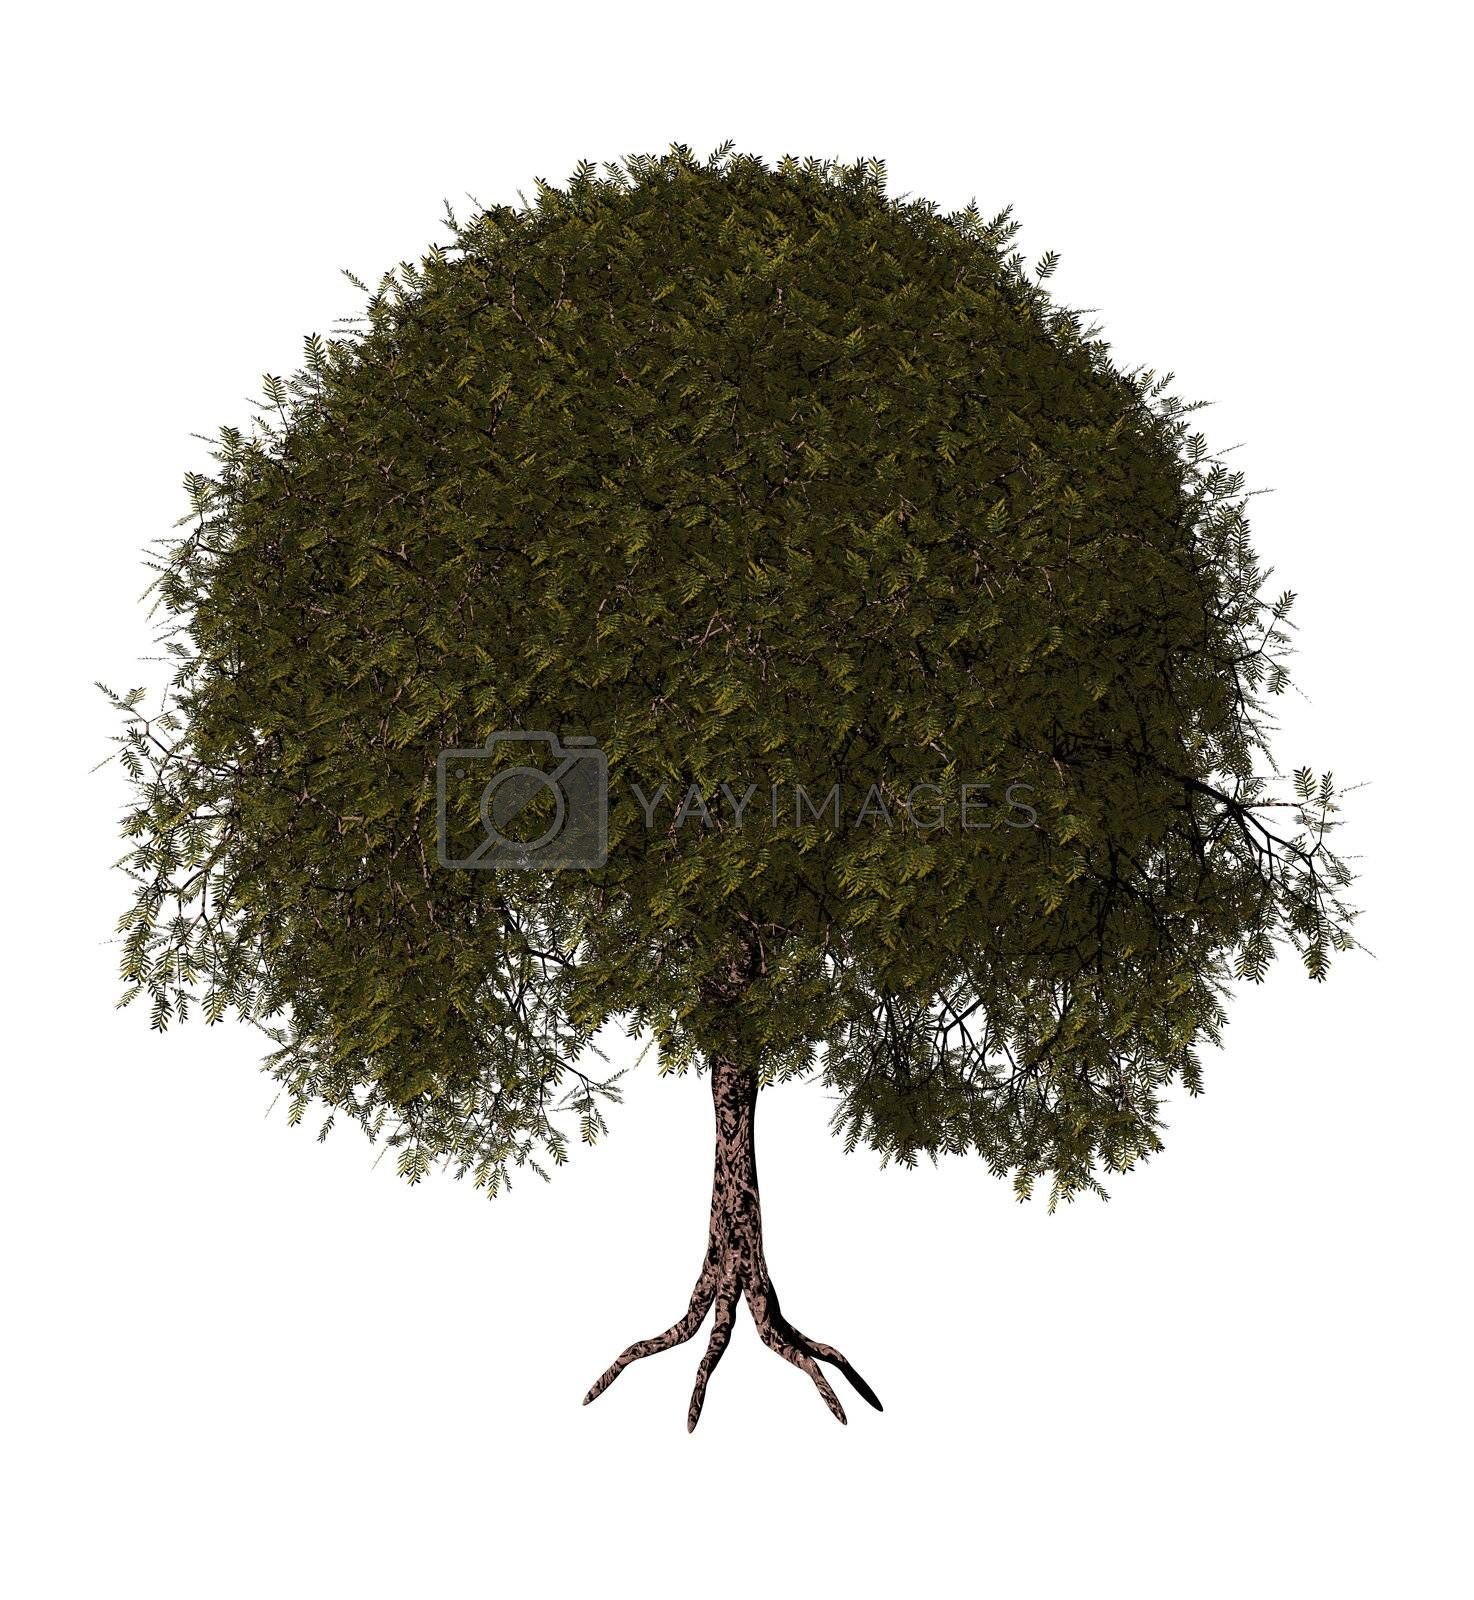 Royalty free image of tree by drizzd